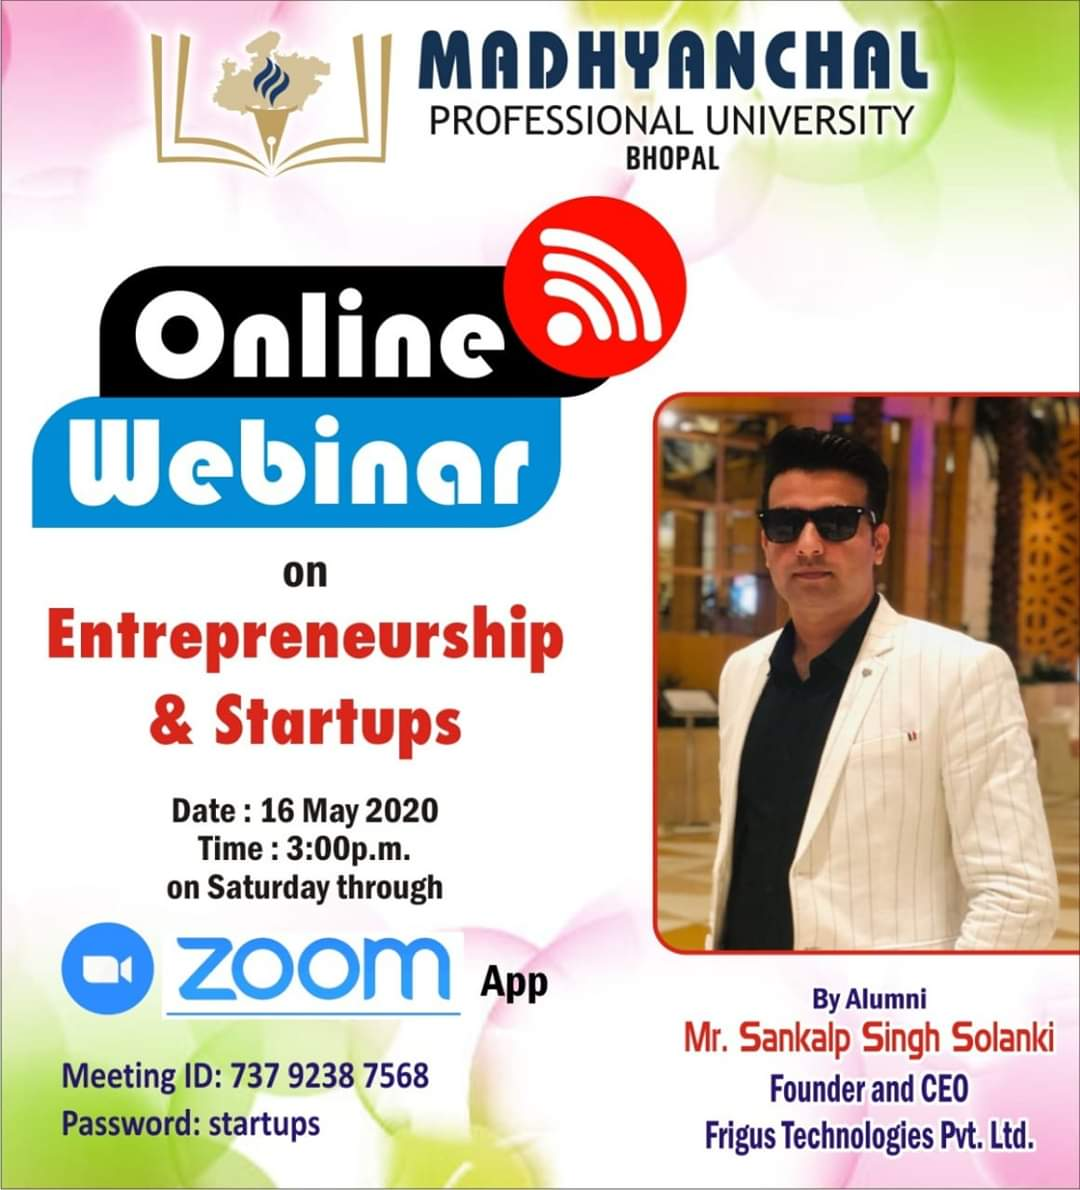 Online Webinar on Entrepreneurship and Startup by Alumni Mr. Sankalp Singh Solanki Founder and CEO Frigus Technologies Pvt. Ltd.